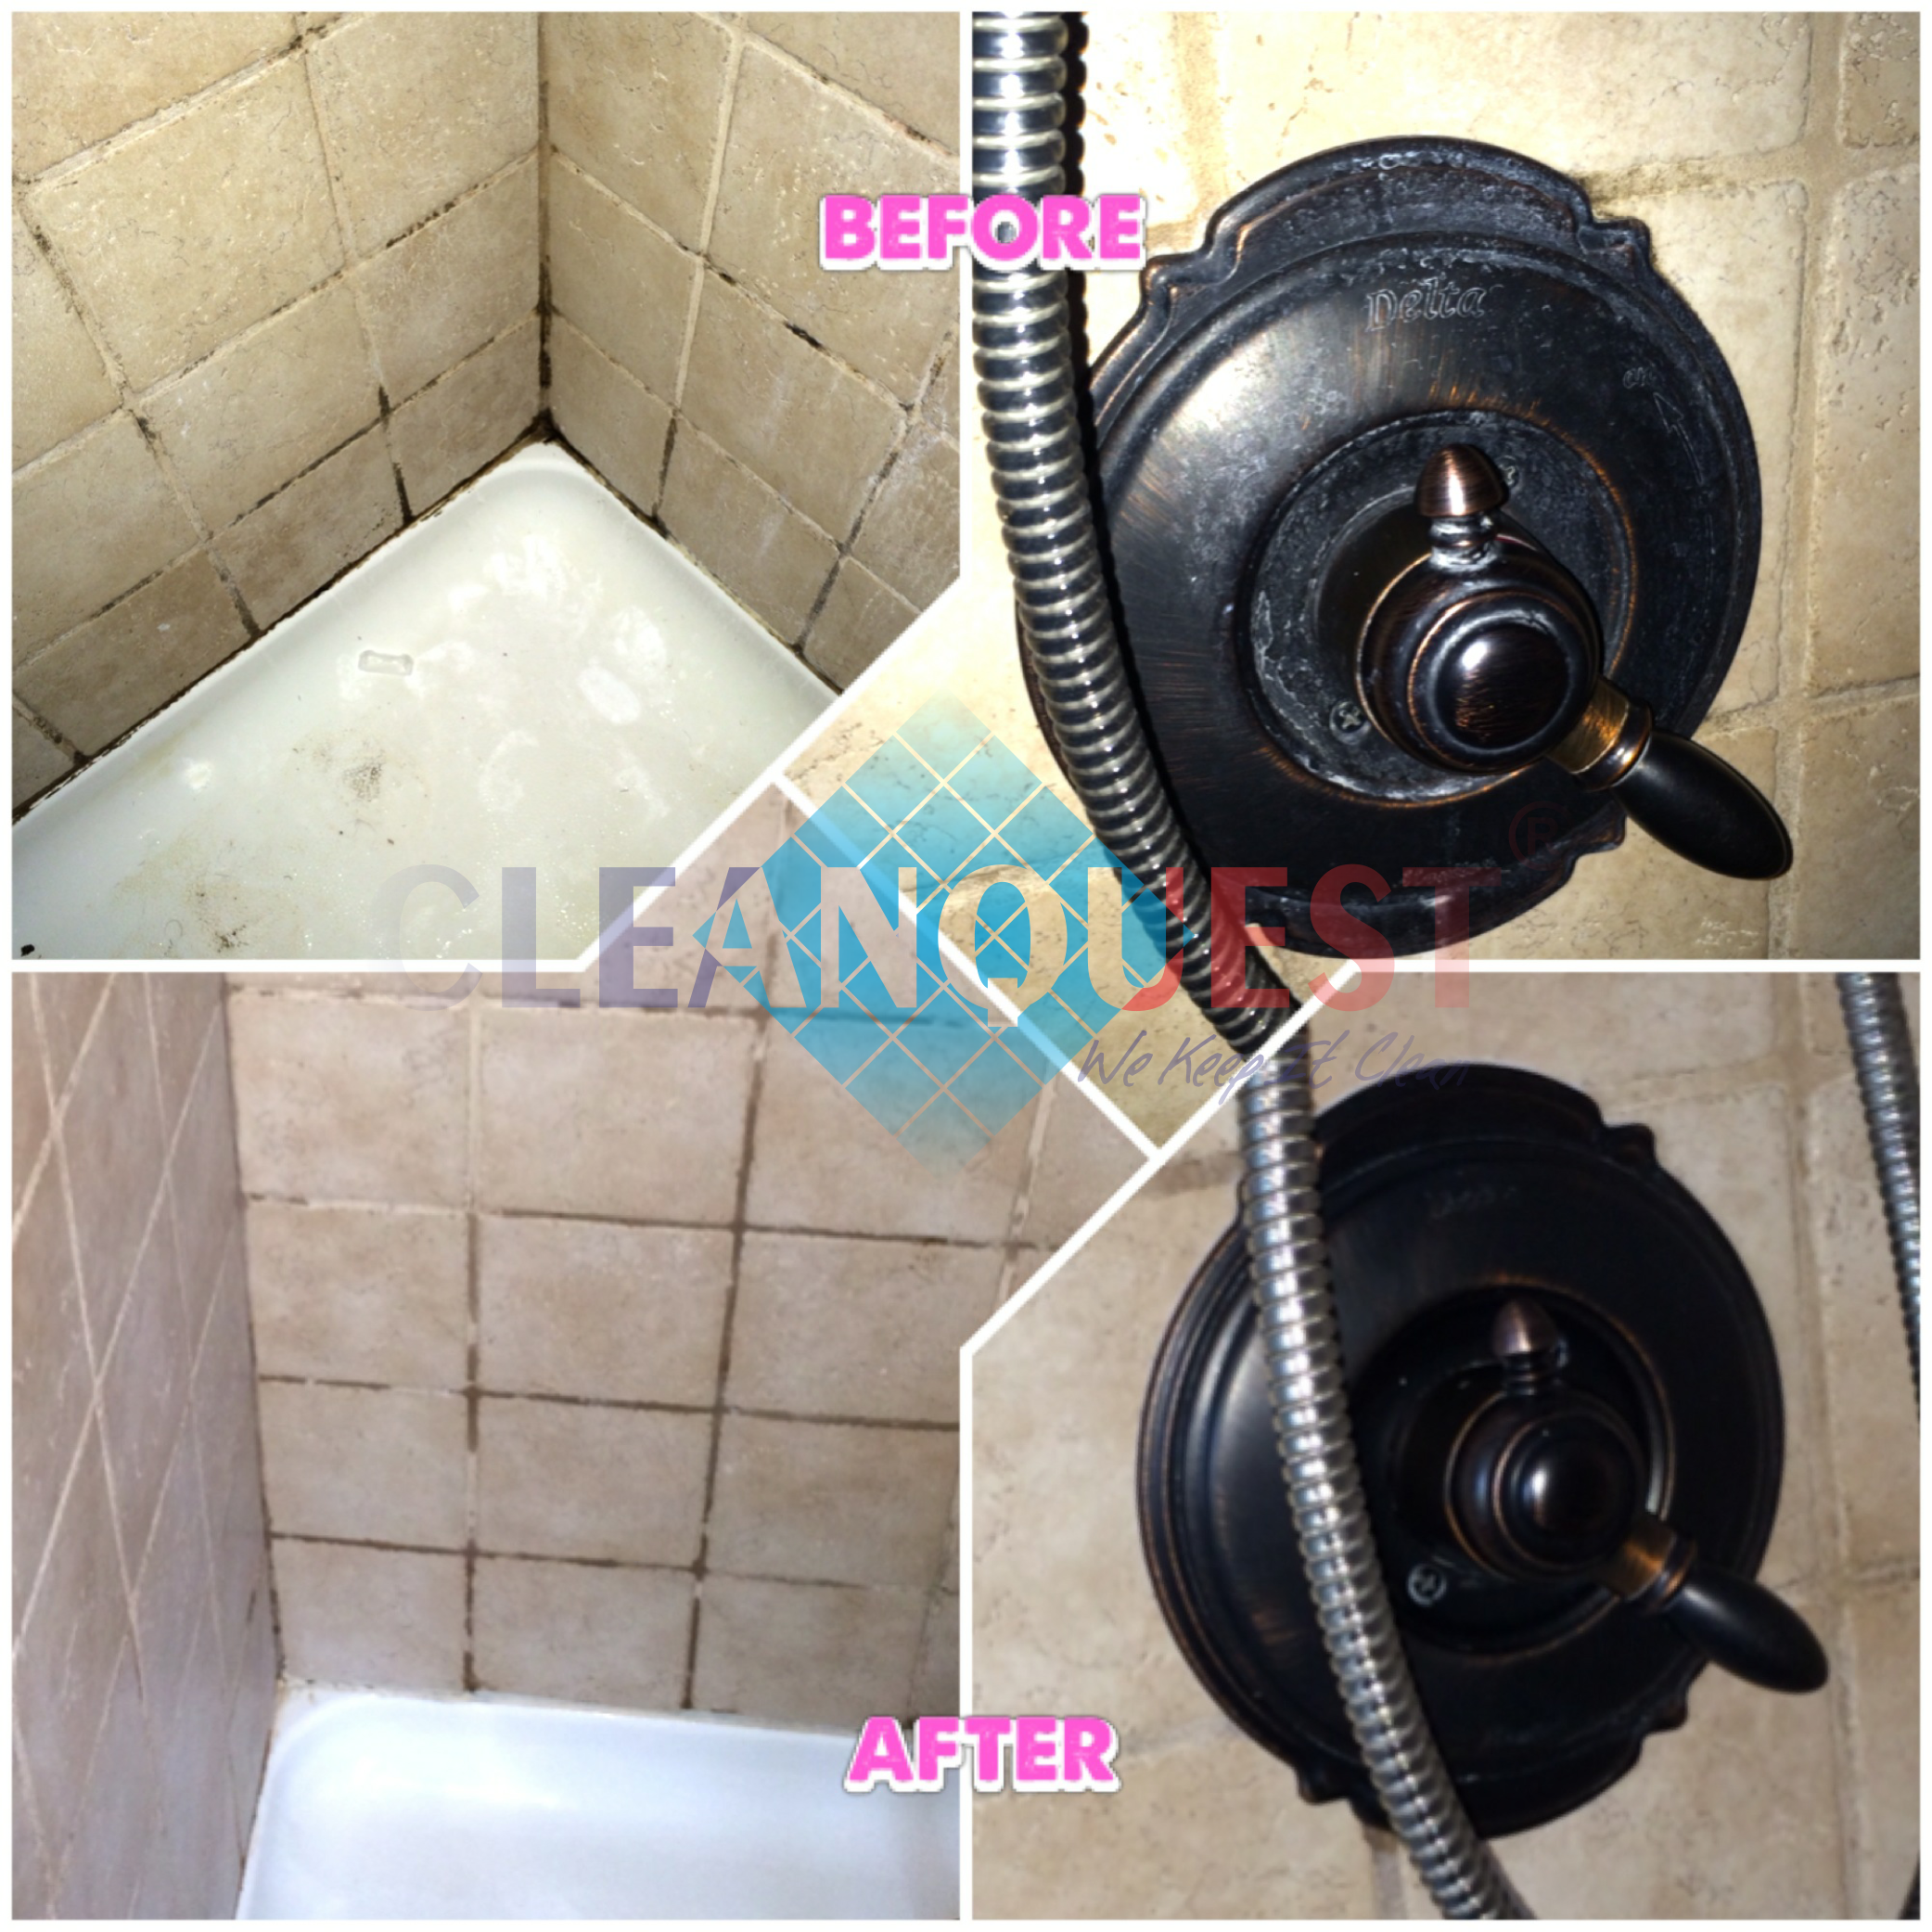 Here is one of most recent move-out cleaning by #CLEANQUEST; compare before and after photos of the shower. The shower grout is some what wet but looks very clean.